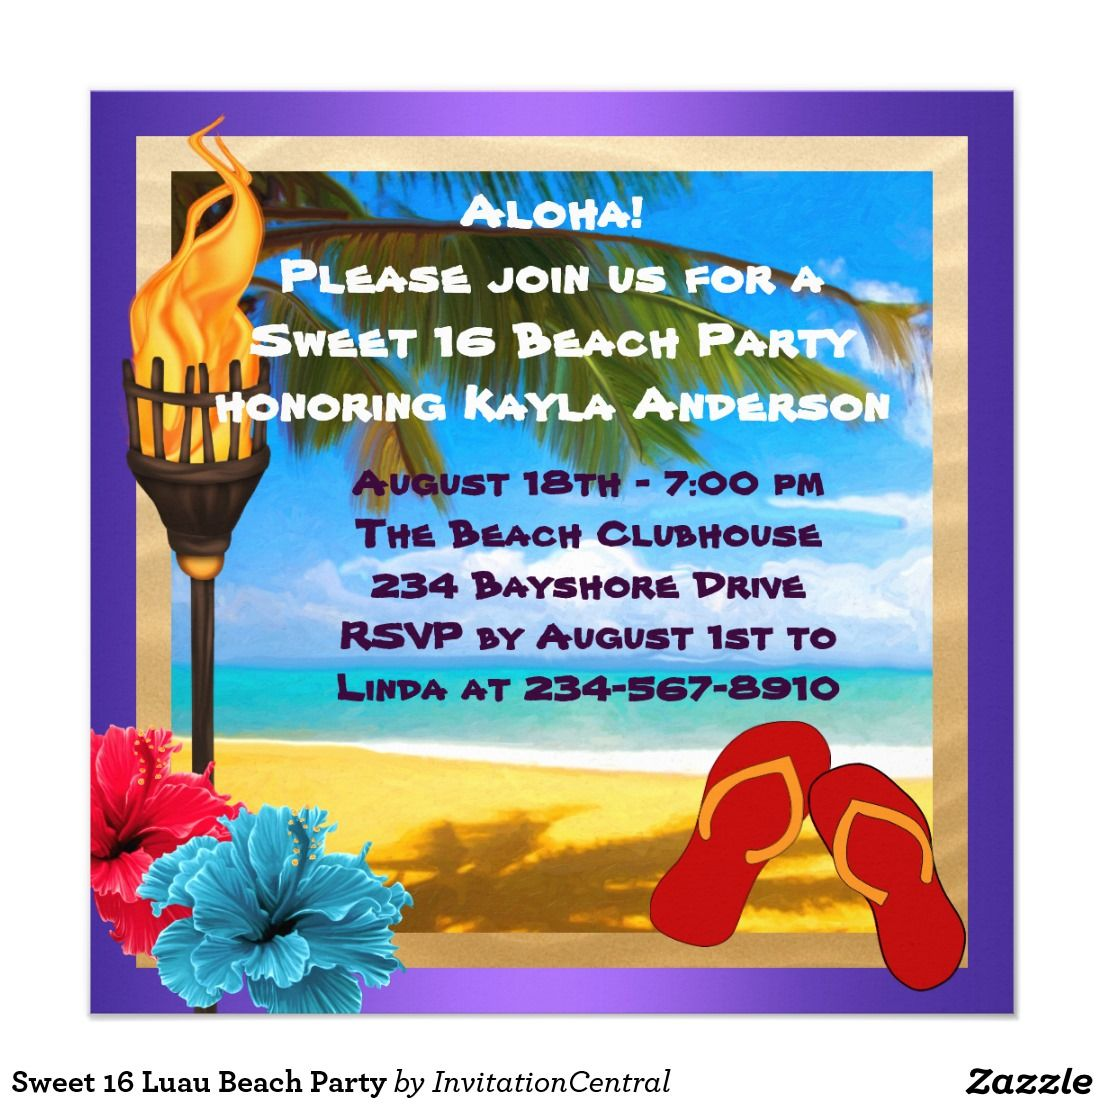 Sweet 16 Luau Beach Party Card | Luau, Sweet 16 and Caribbean party